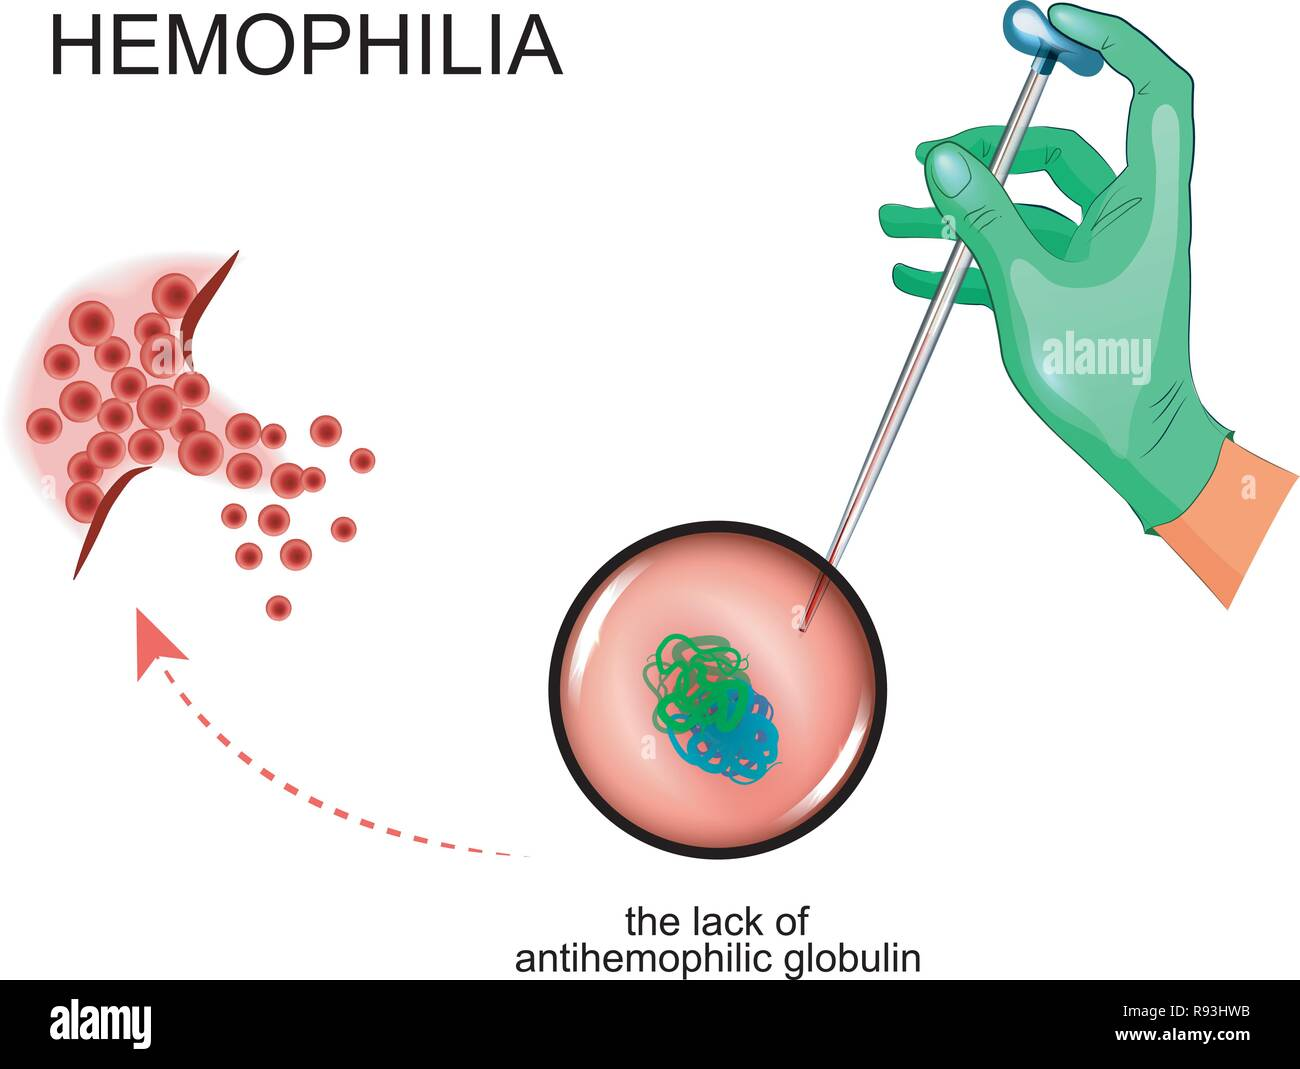 vector illustration of a pathological process in hemophilia - Stock Vector